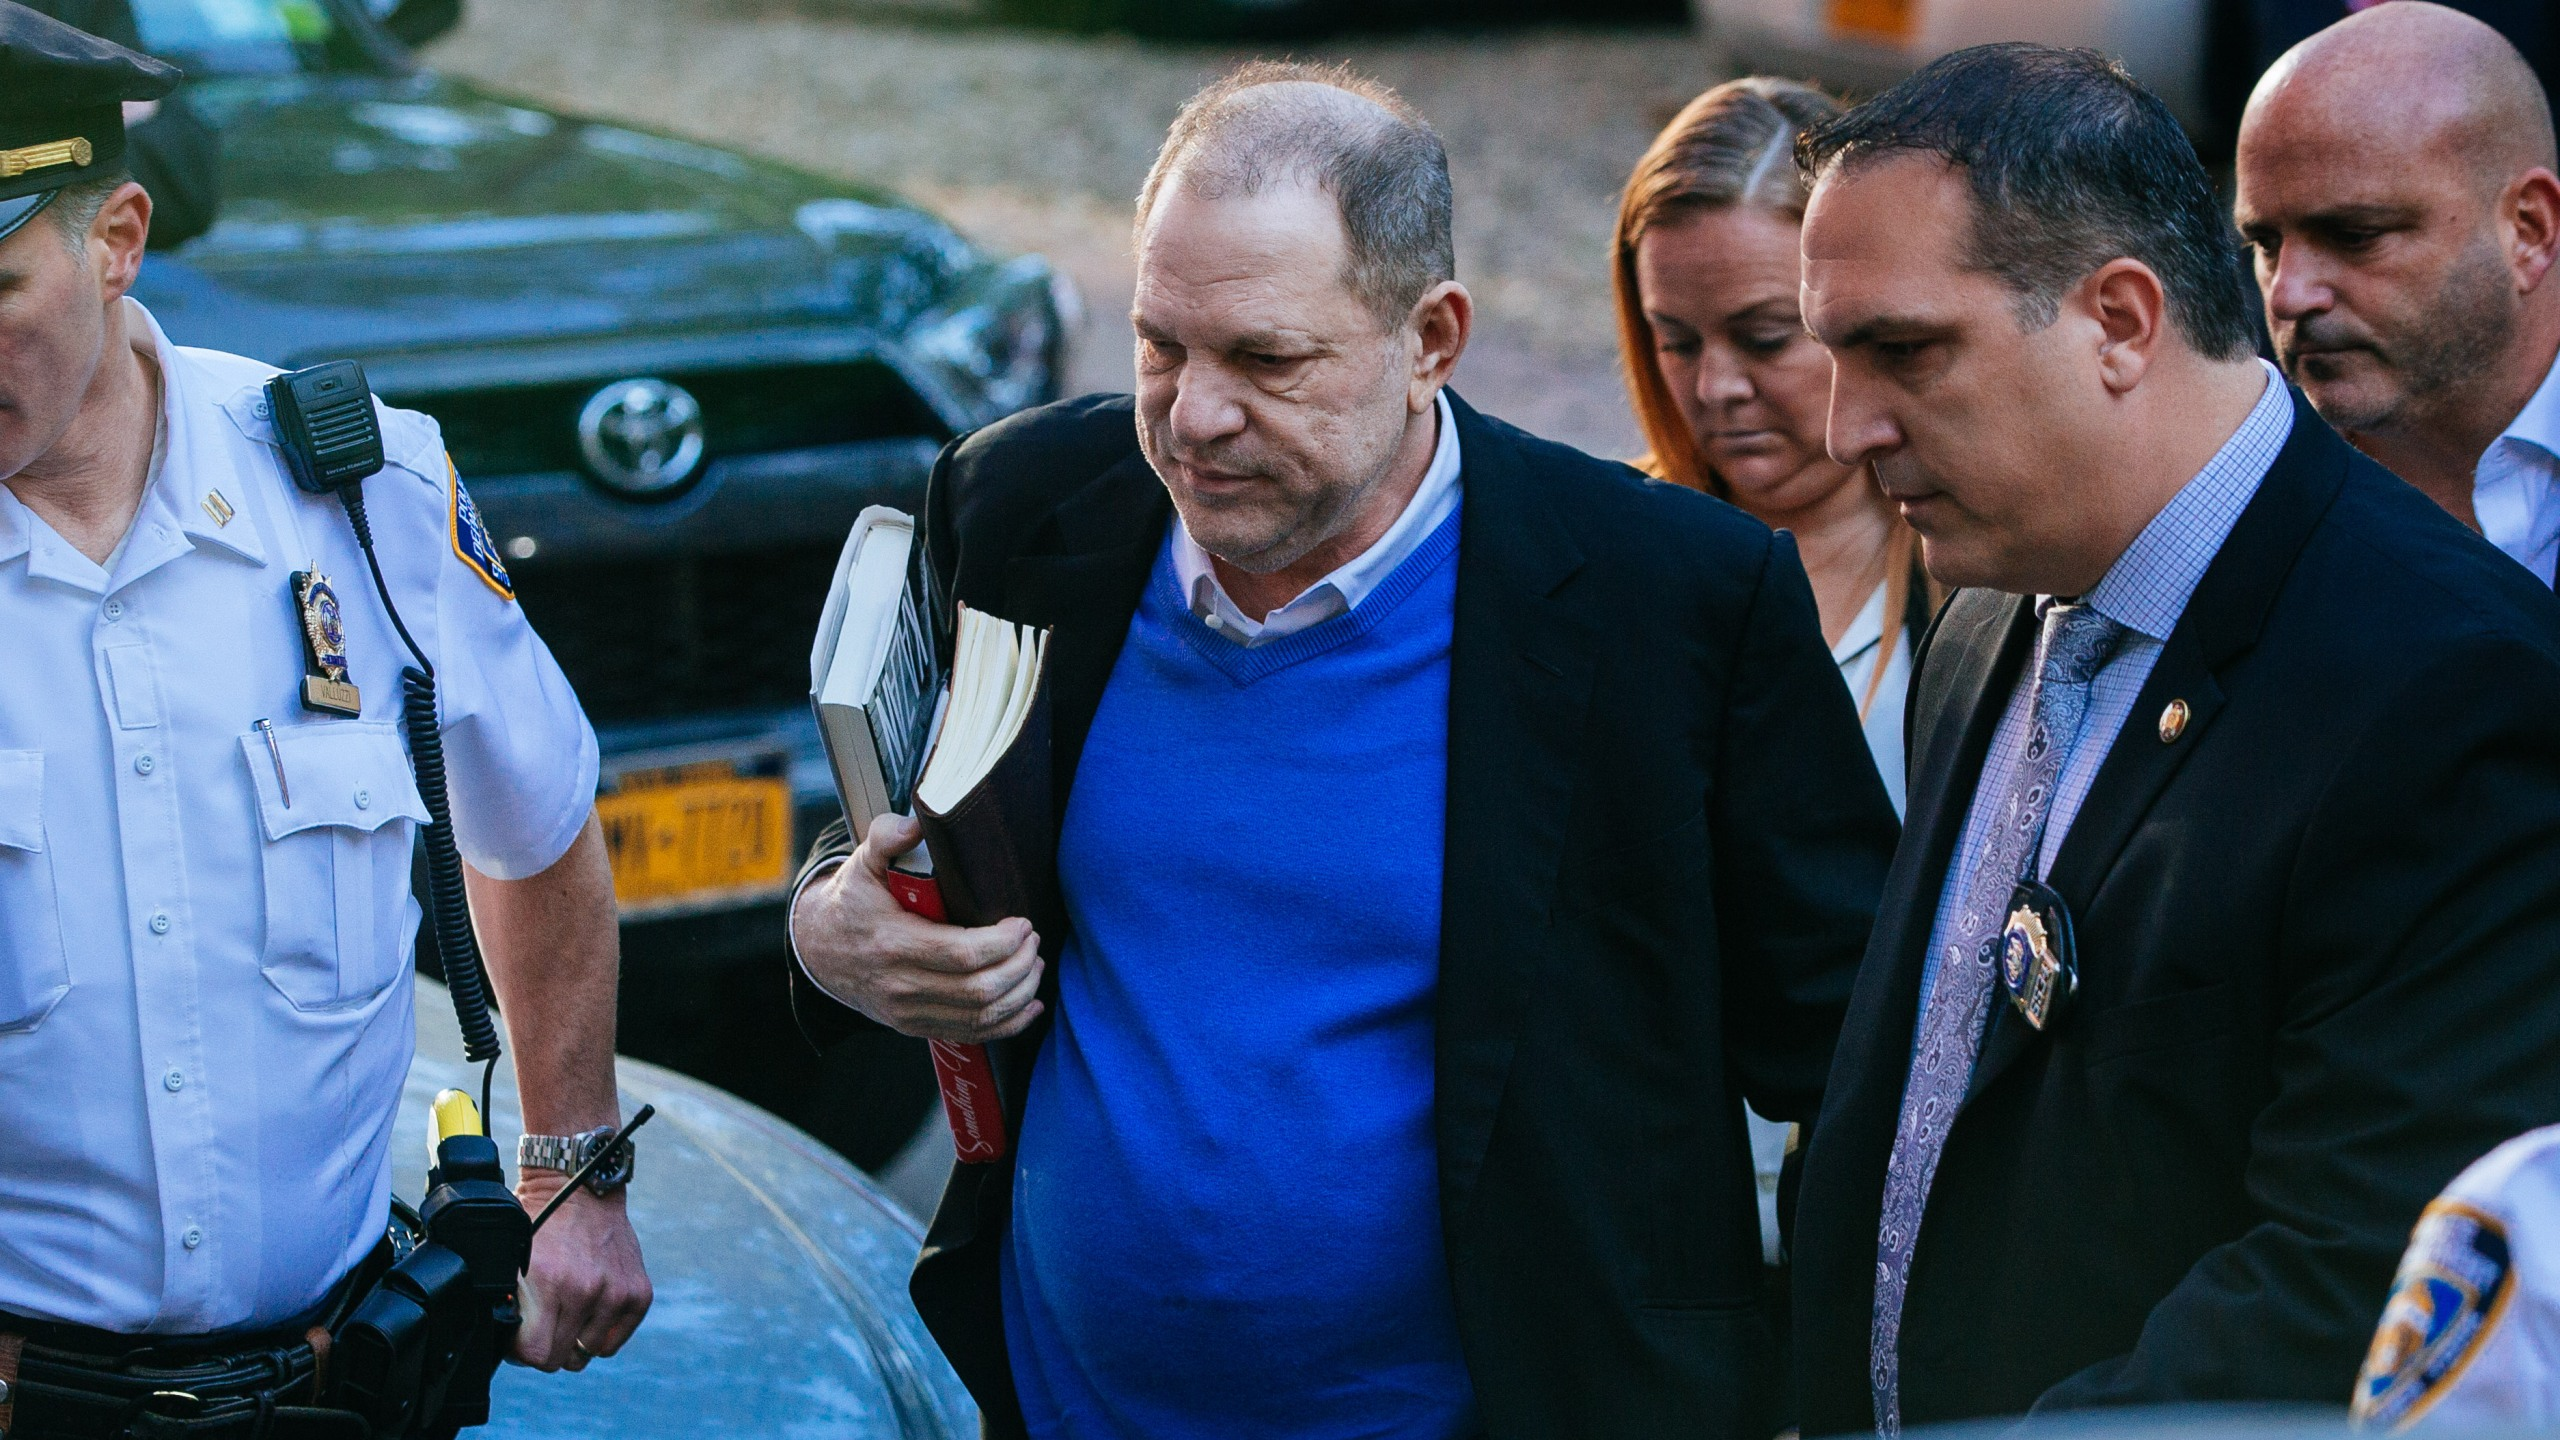 Harvey Weinstein turns himself in to the New York Police Department's First Precinct after being served with criminal charges by the Manhattan District Attorney's office on May 25, 2018, in New York City. (Credit: Kevin Hagen / Getty Images)